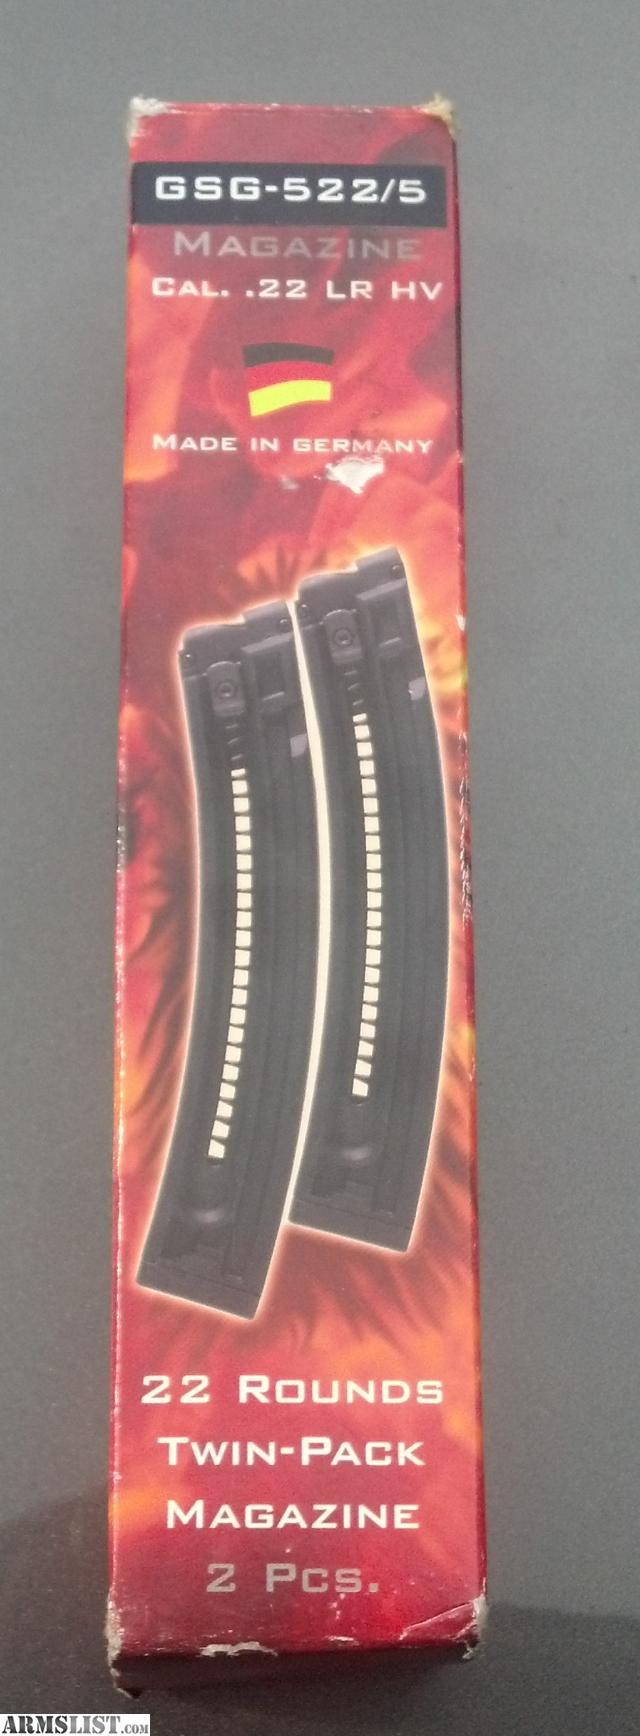 For Sale: GSG 522 MAGAZINE BRAND NEW!!!! 22 Rounds